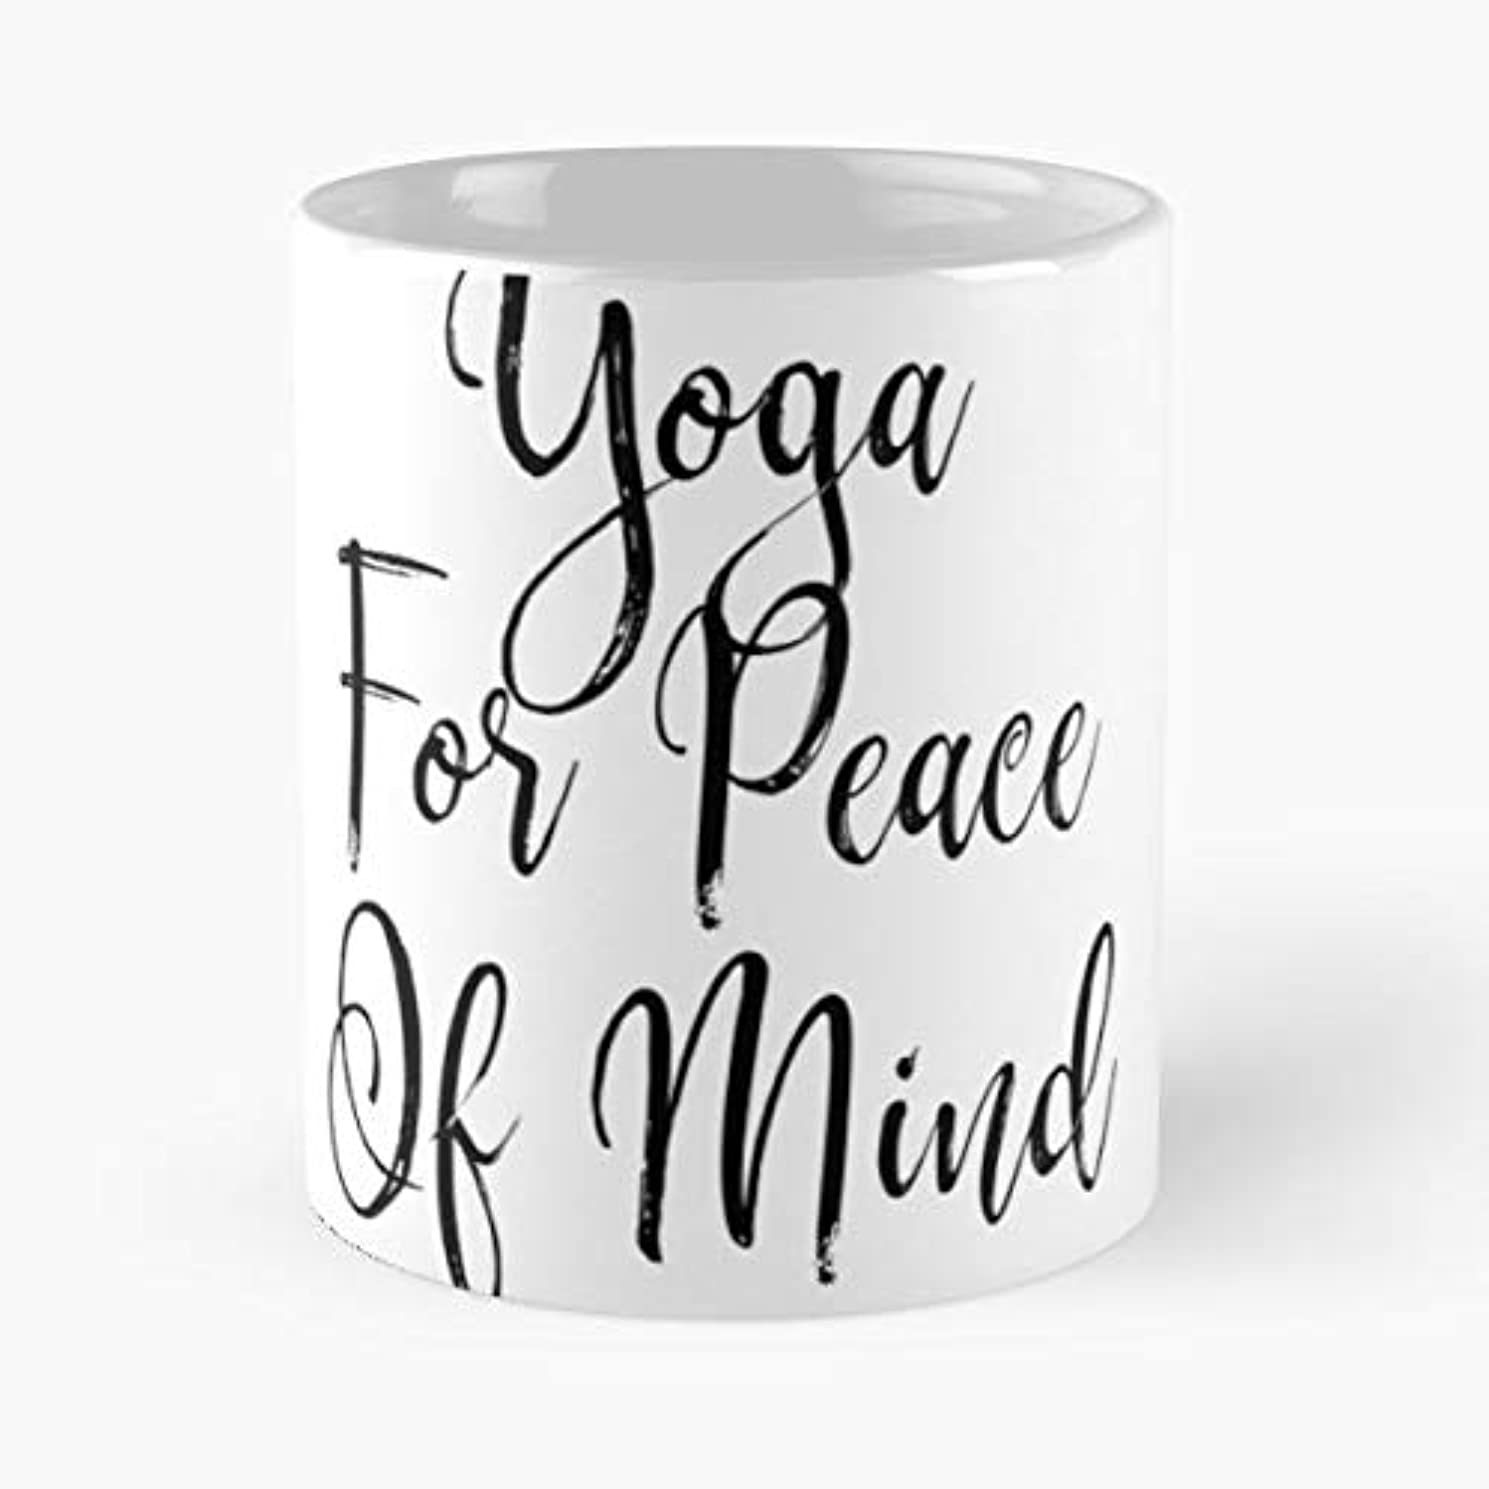 Funny Yoga Gift Cool T Shirt Namaste Quotes - 11 Oz Coffee Mugs Ceramic The Best For Holidays, Item Use Daily